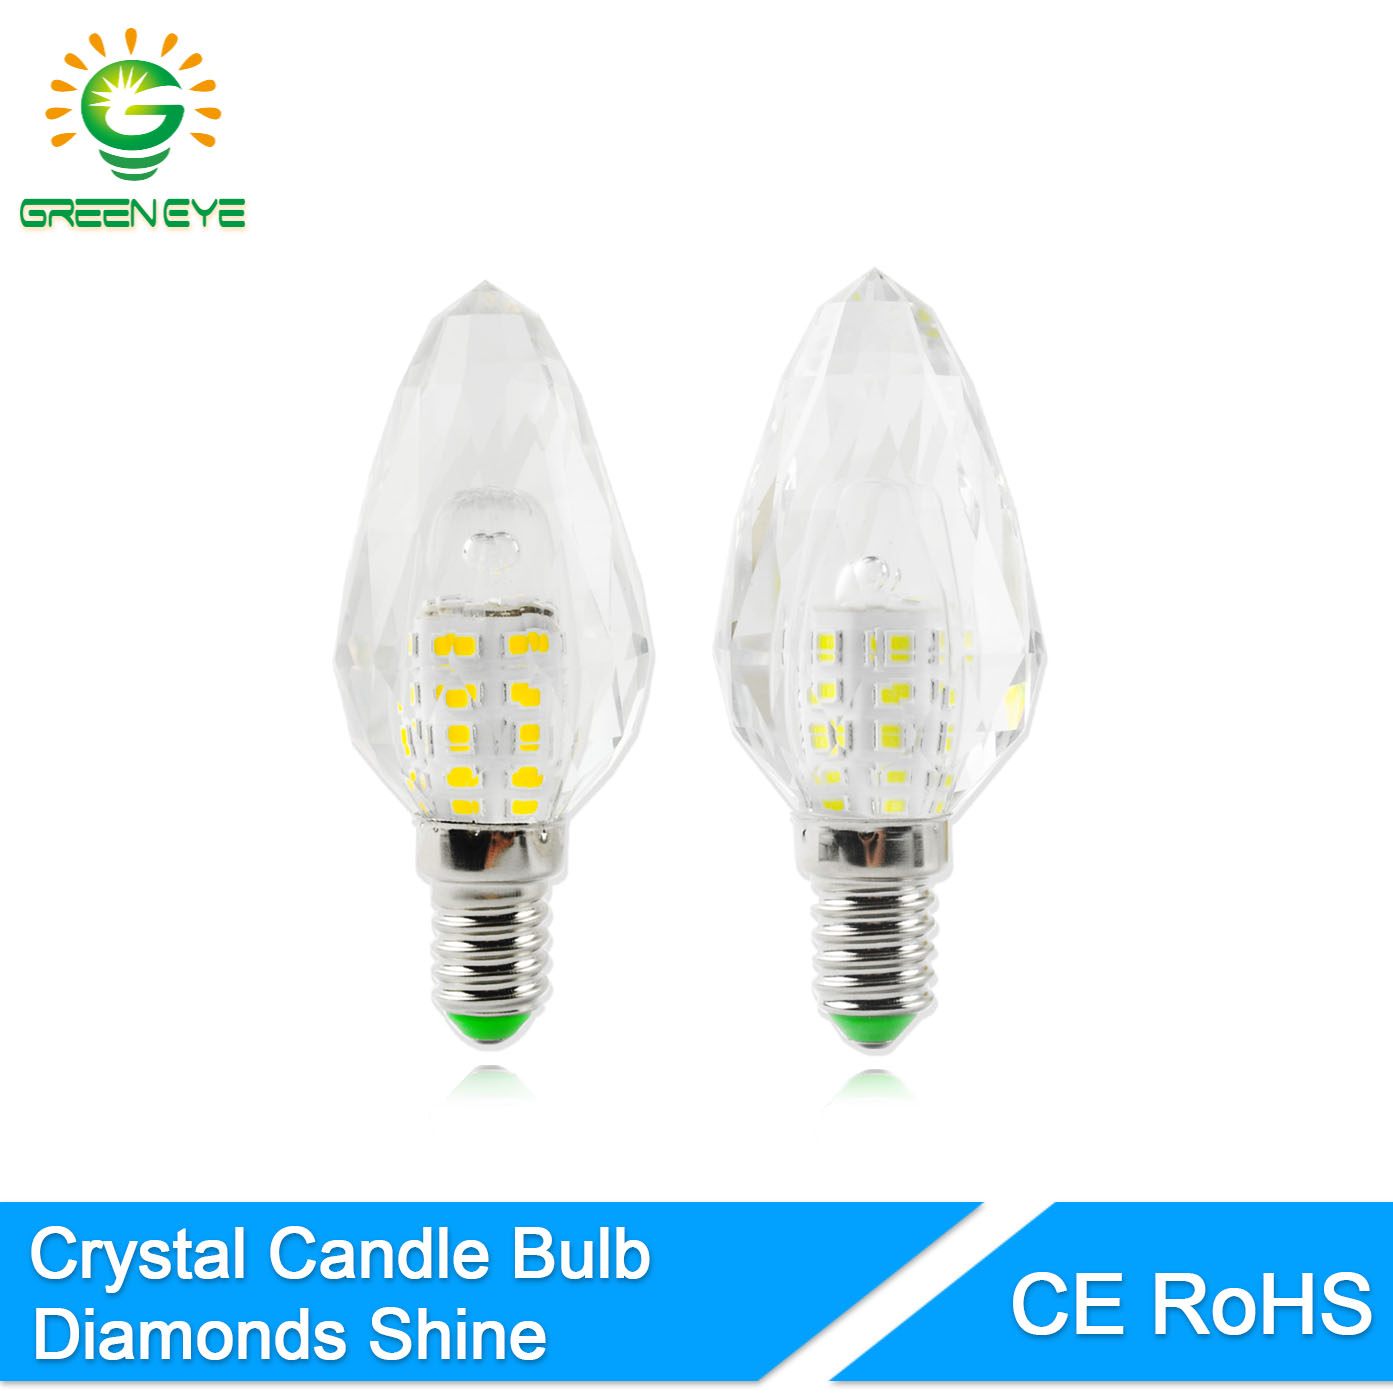 greeneye korea crystal led e14 candle bulb 9w led light 220v led lamp lampada bombillas ampoule. Black Bedroom Furniture Sets. Home Design Ideas